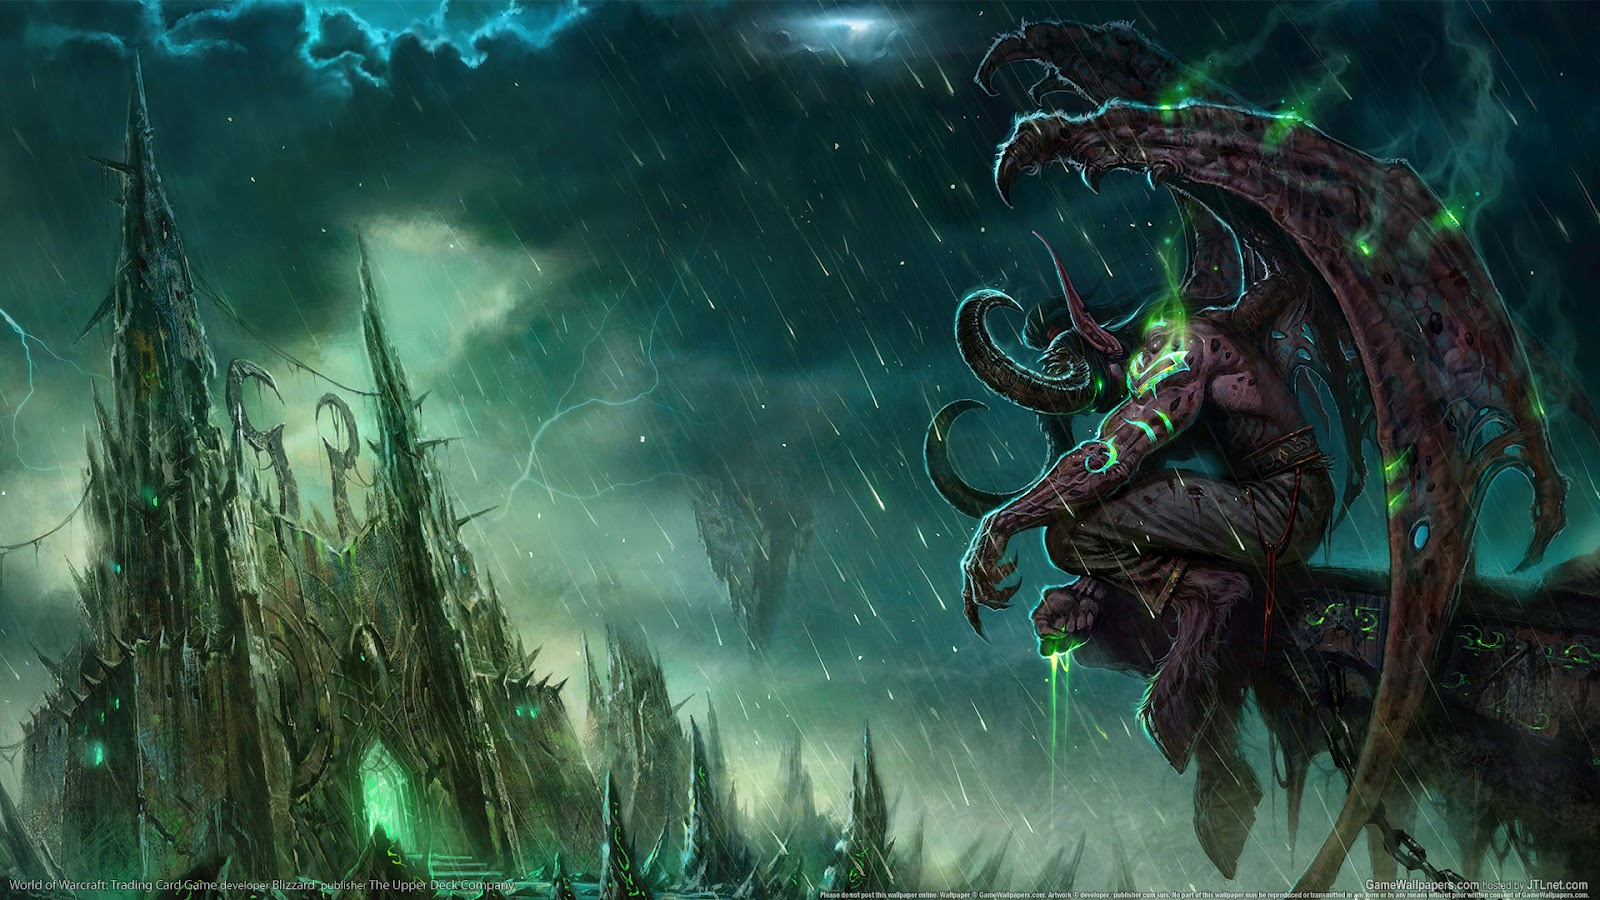 http://4.bp.blogspot.com/-IcssJPXgsX4/UA6qkyv6HRI/AAAAAAAAA5U/31LDG4XrN78/s1600/wallpaper_world_of_warcraft_trading_card_game_17_1920x1080.jpg